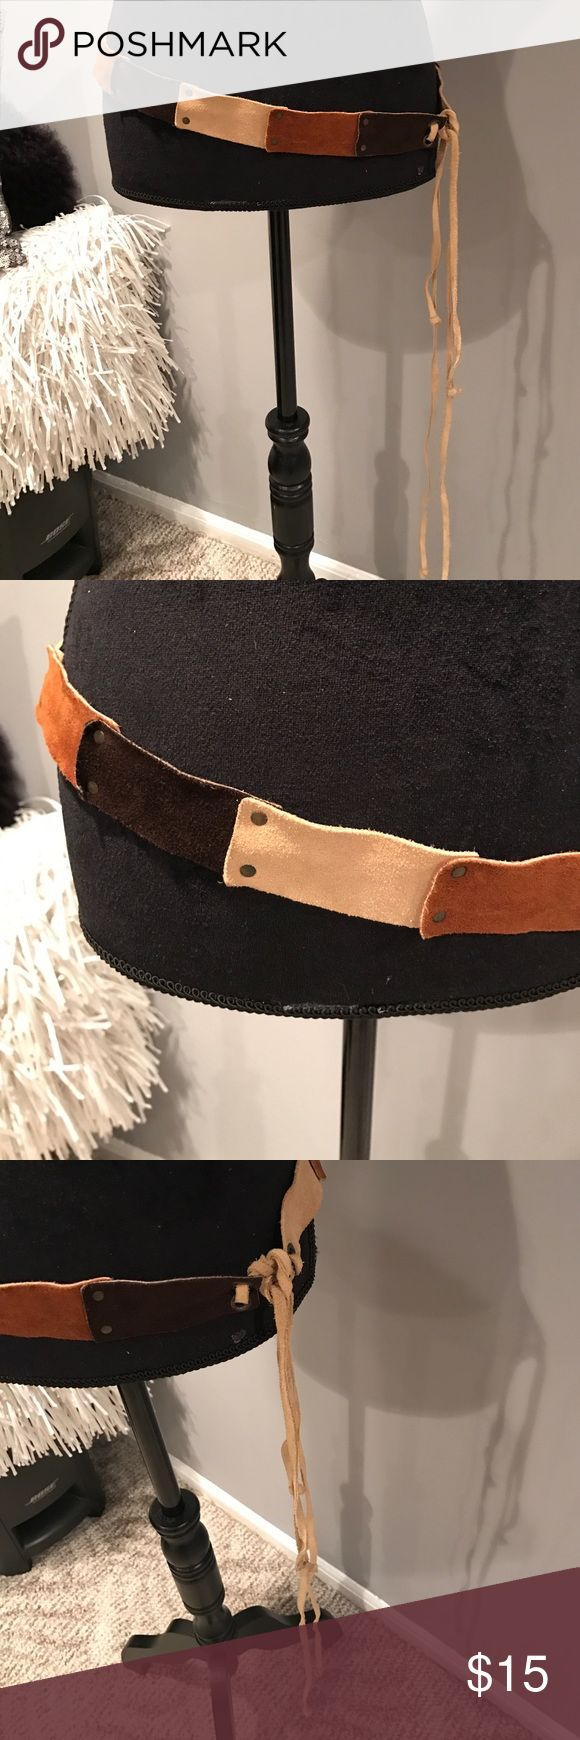 Multi brown suede tie belt Belt part measures 35 inches. Gently worn. A few blue marks on the tie part maybe from my jeans but not noticeable unless looking for it. I I inspect every measure of anything I post! So I just noticed! Accessories Belts